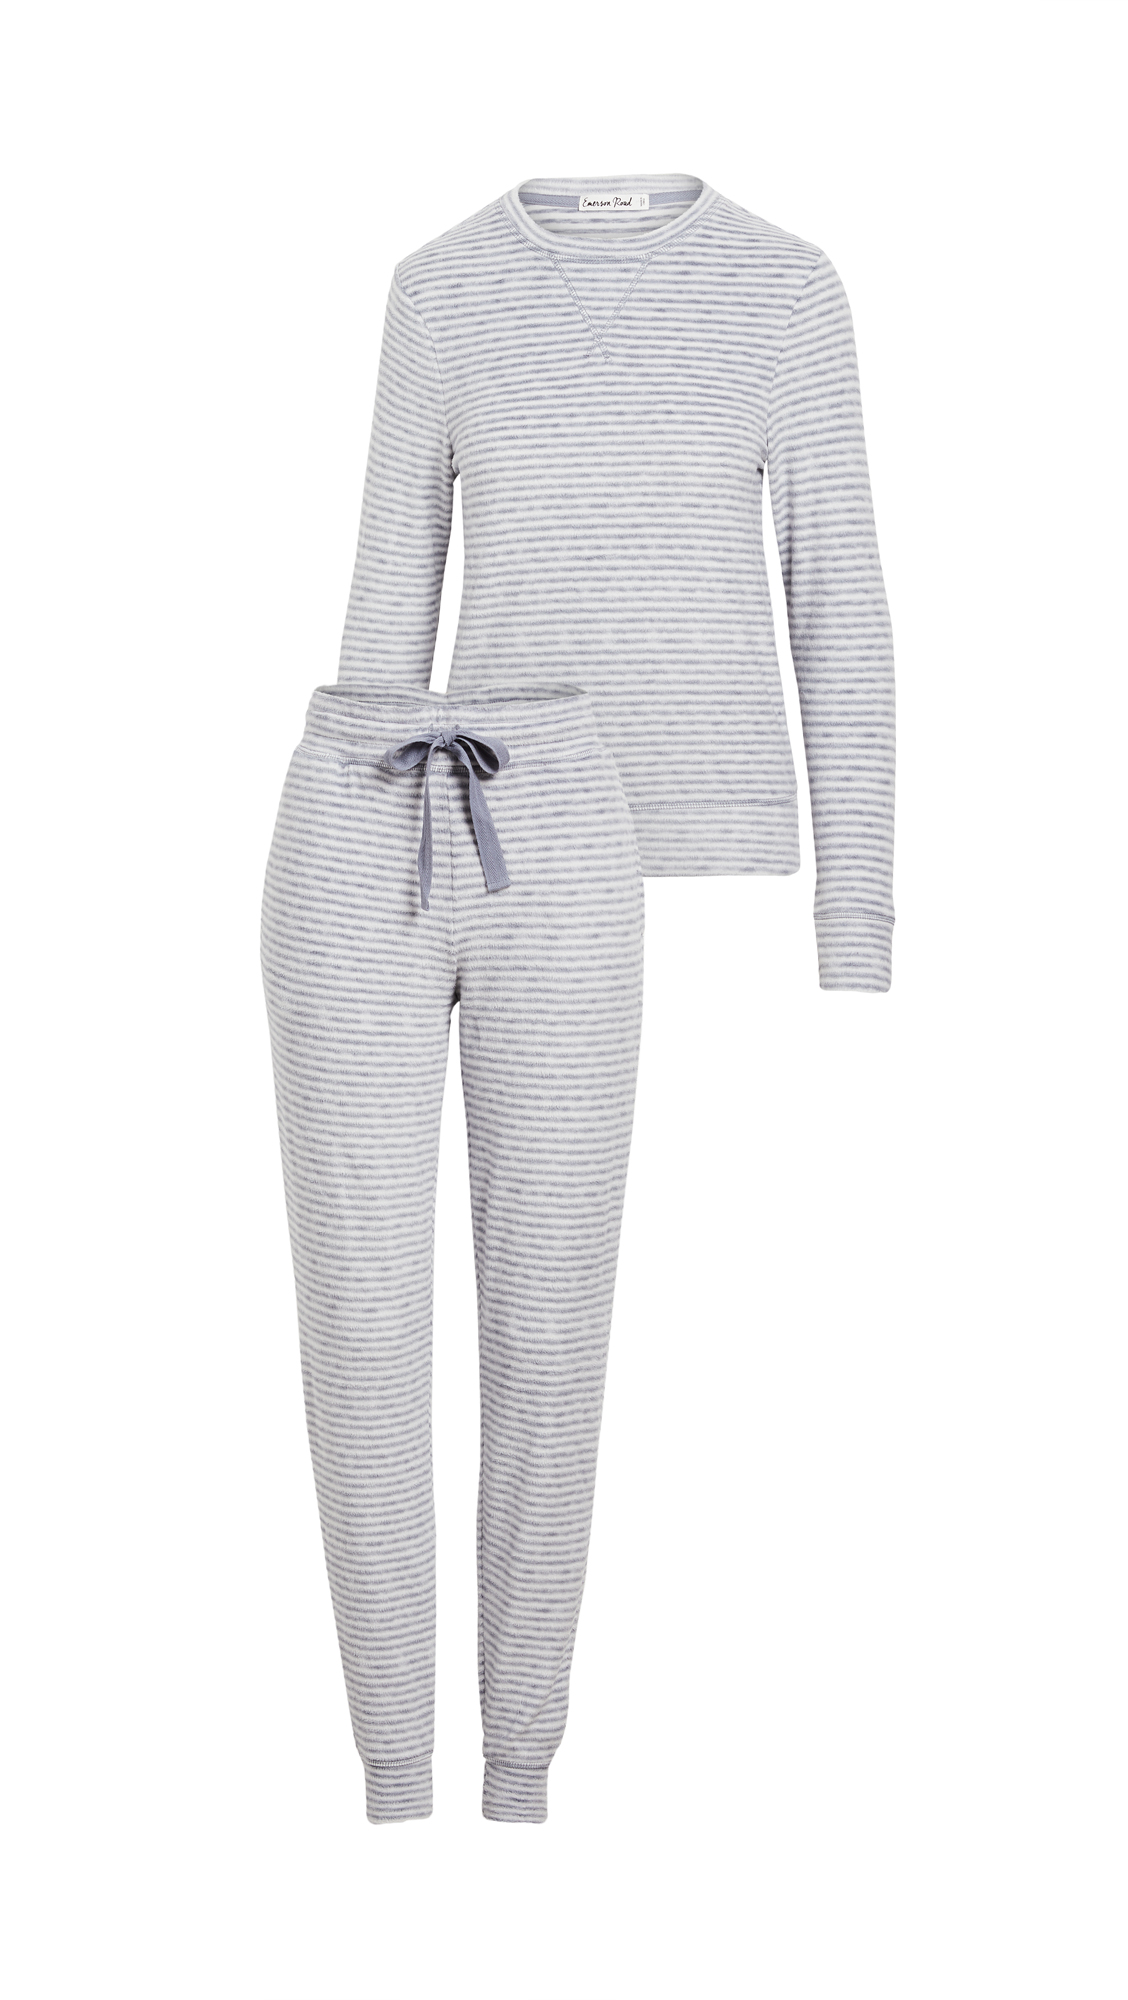 Emerson Road Fuzzy Luxe Crew Neck with Joggers Pajama Set